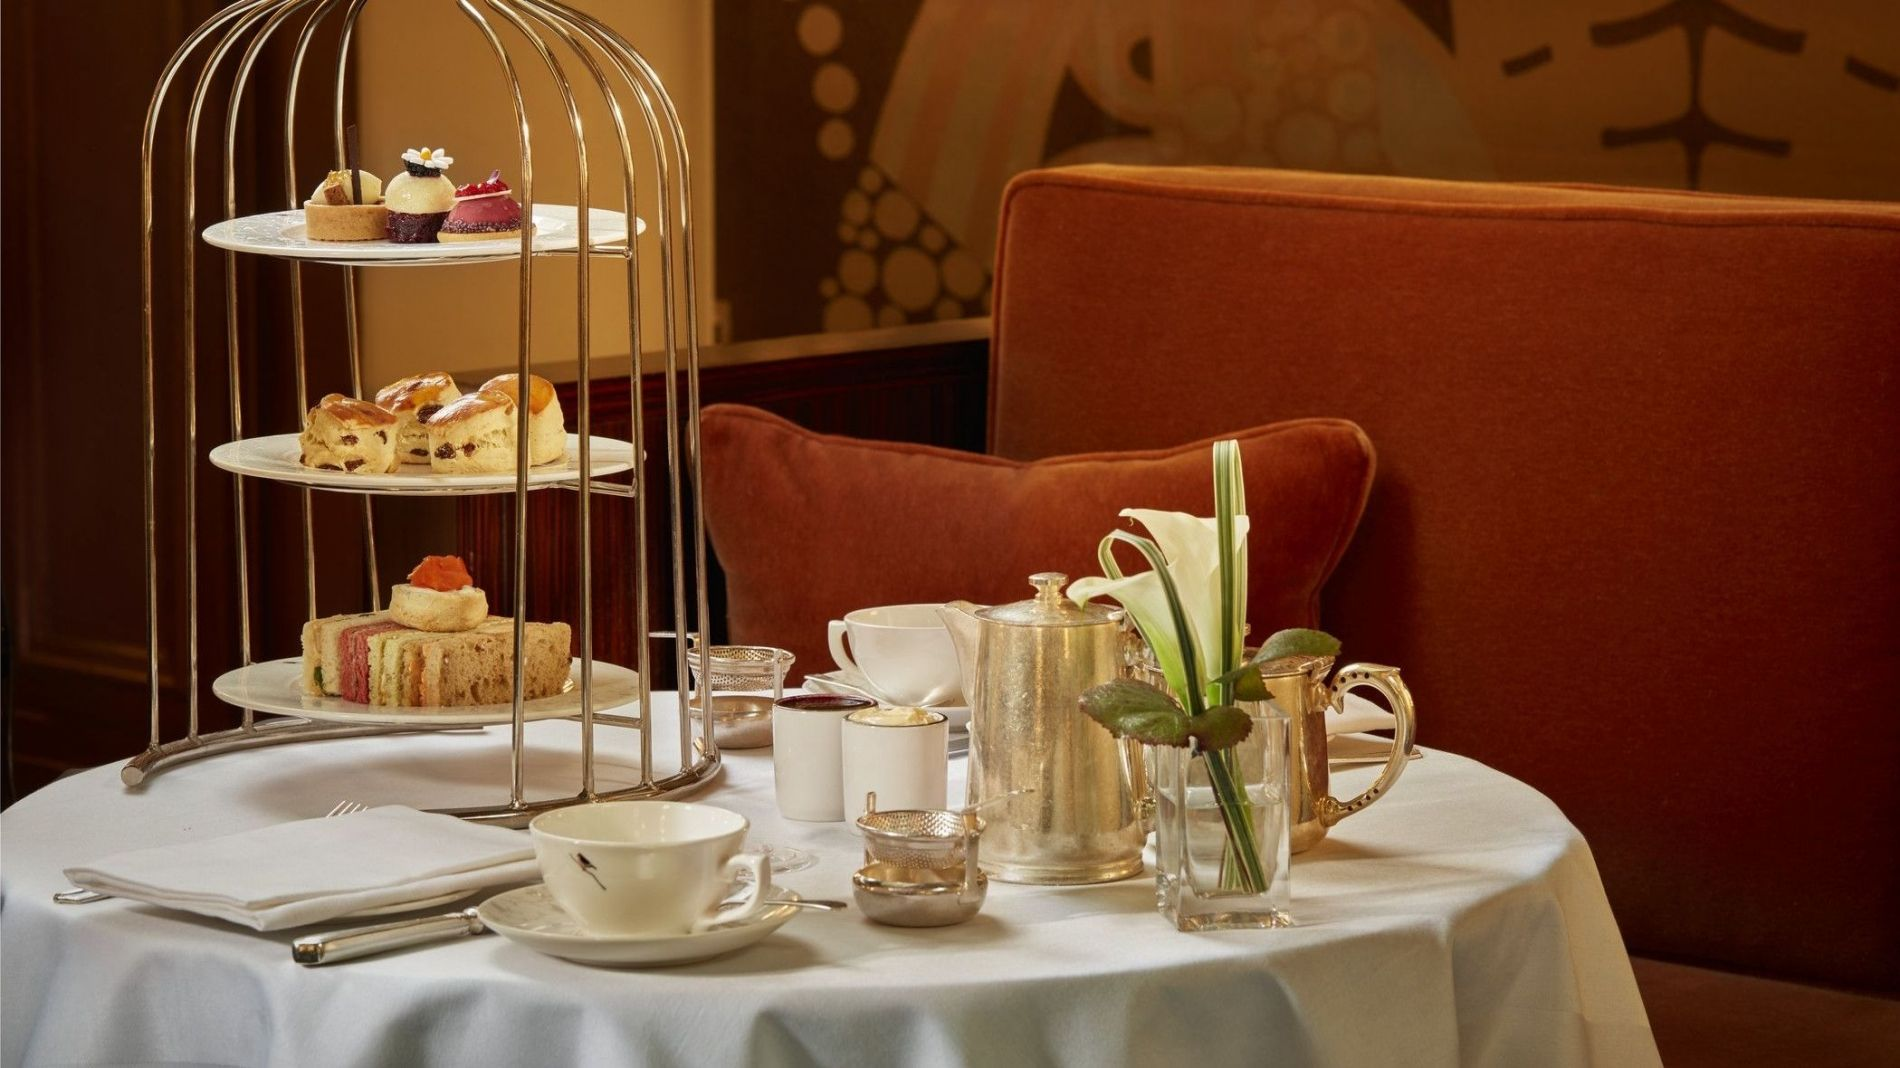 Afternoon Tea In London How To Make The Most Of This World Famous Experience